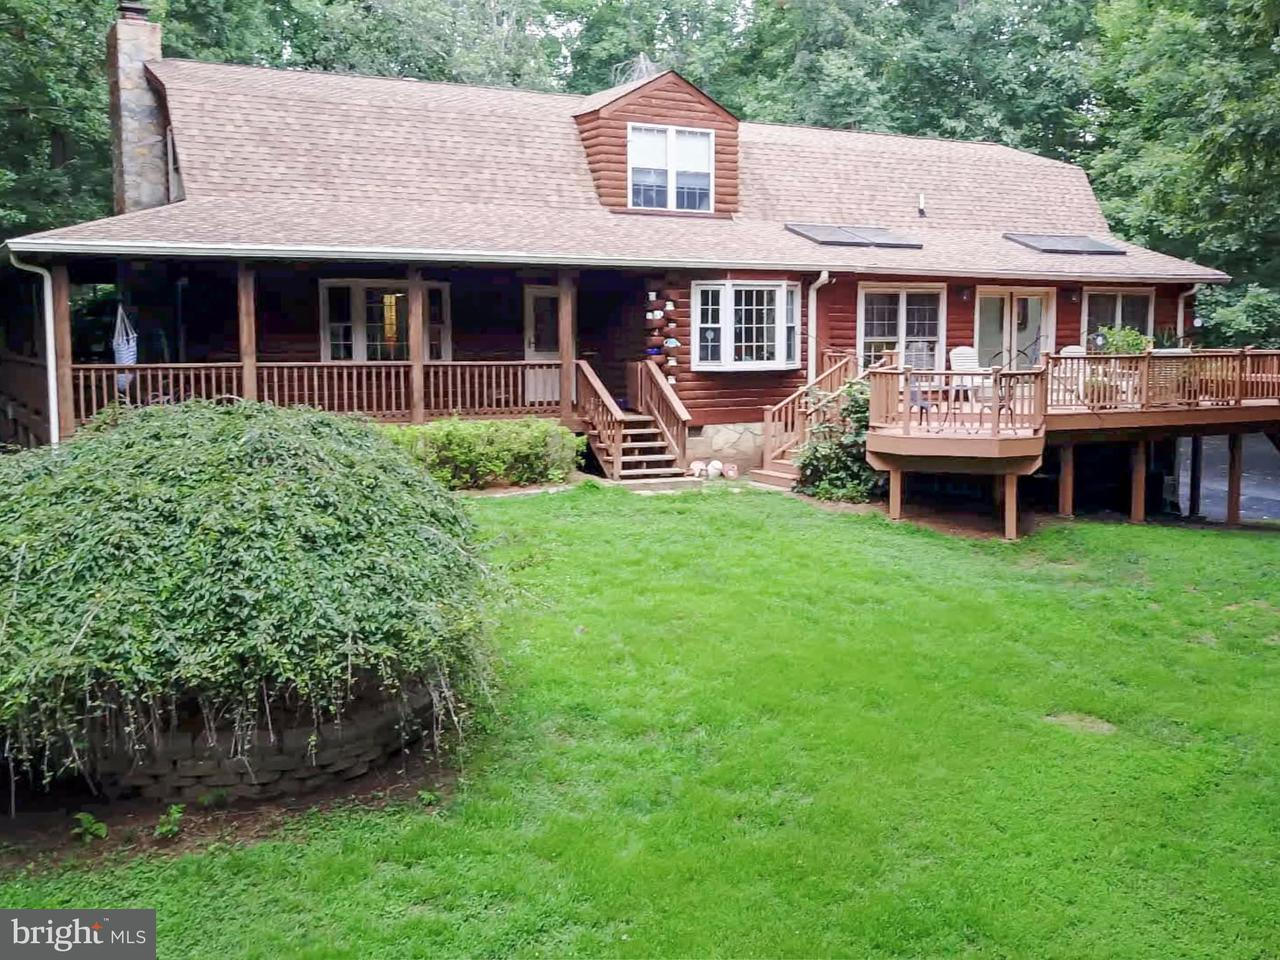 Single Family Home for Sale at 16405 DEERFIELD Lane 16405 DEERFIELD Lane Jeffersonton, Virginia 22724 United States